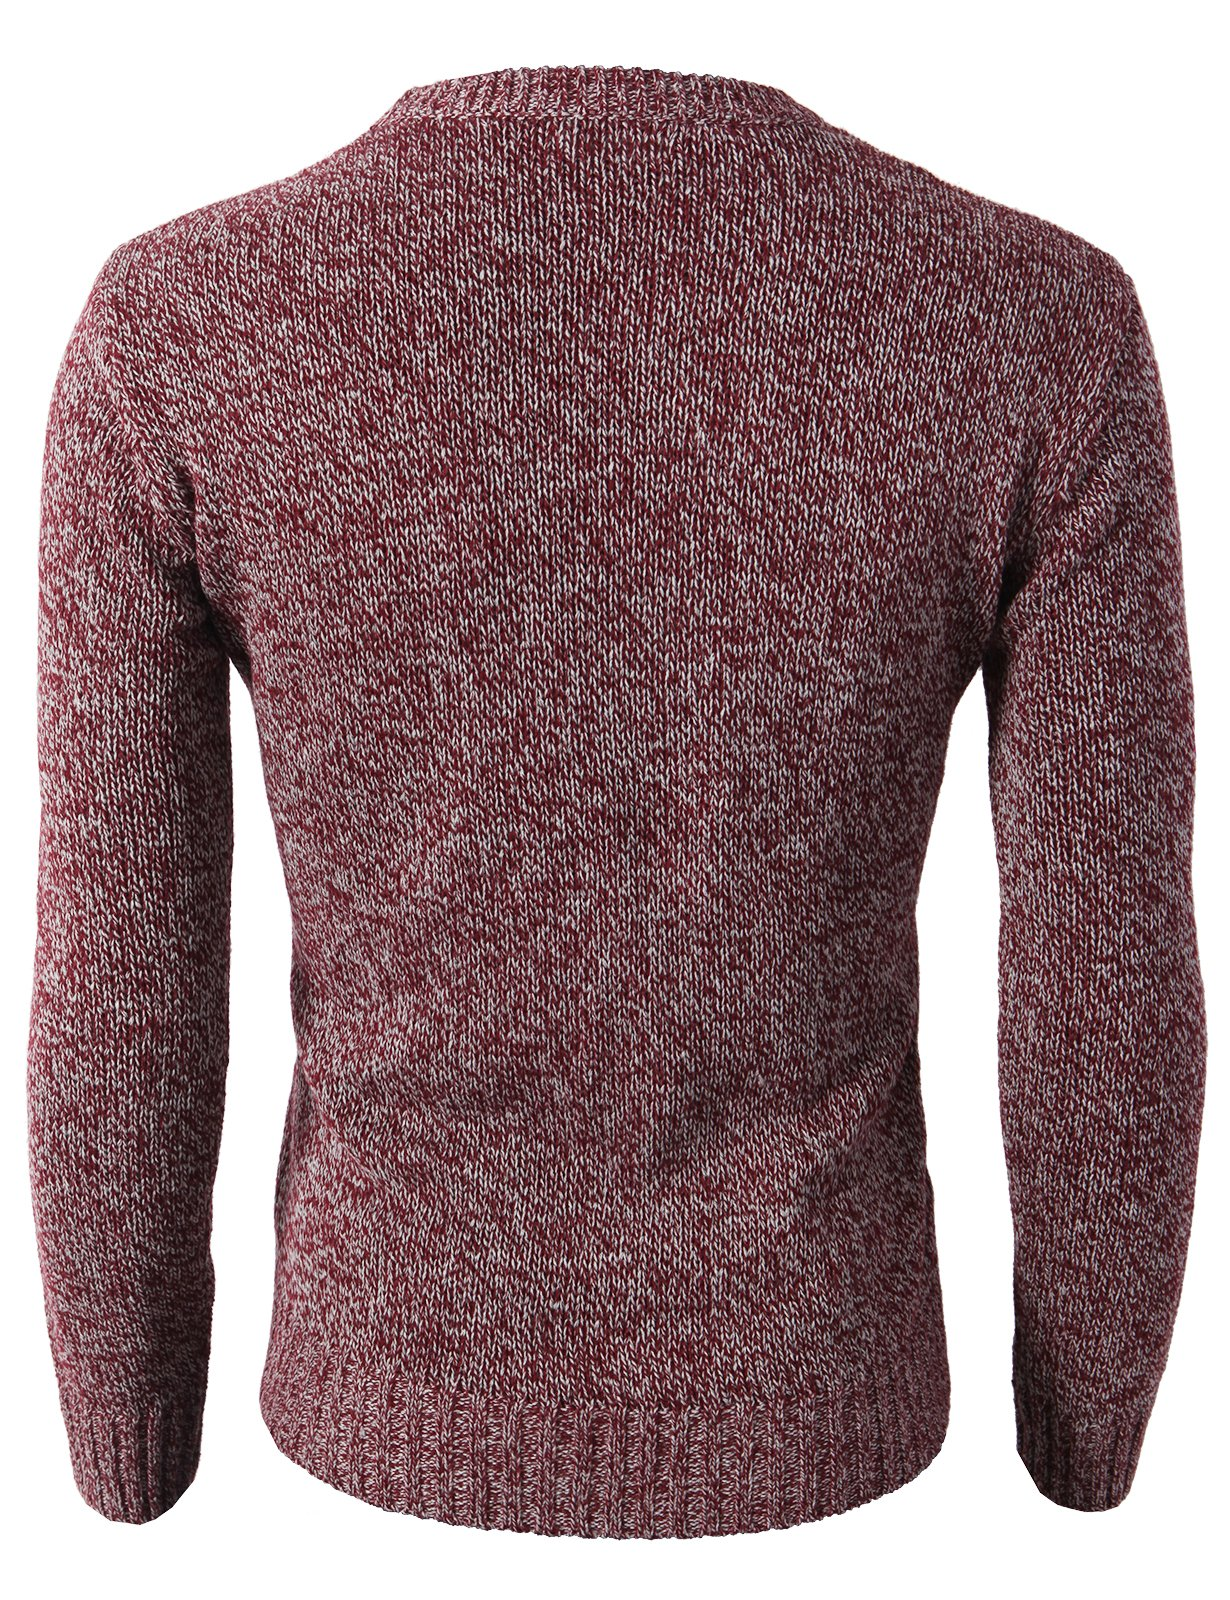 H2H Mens Slim Fit Basic Ribbed Thermal Turtleneck Pullover Sweaters Maroon US M/Asia L (KMOSWL0122) by H2H (Image #3)